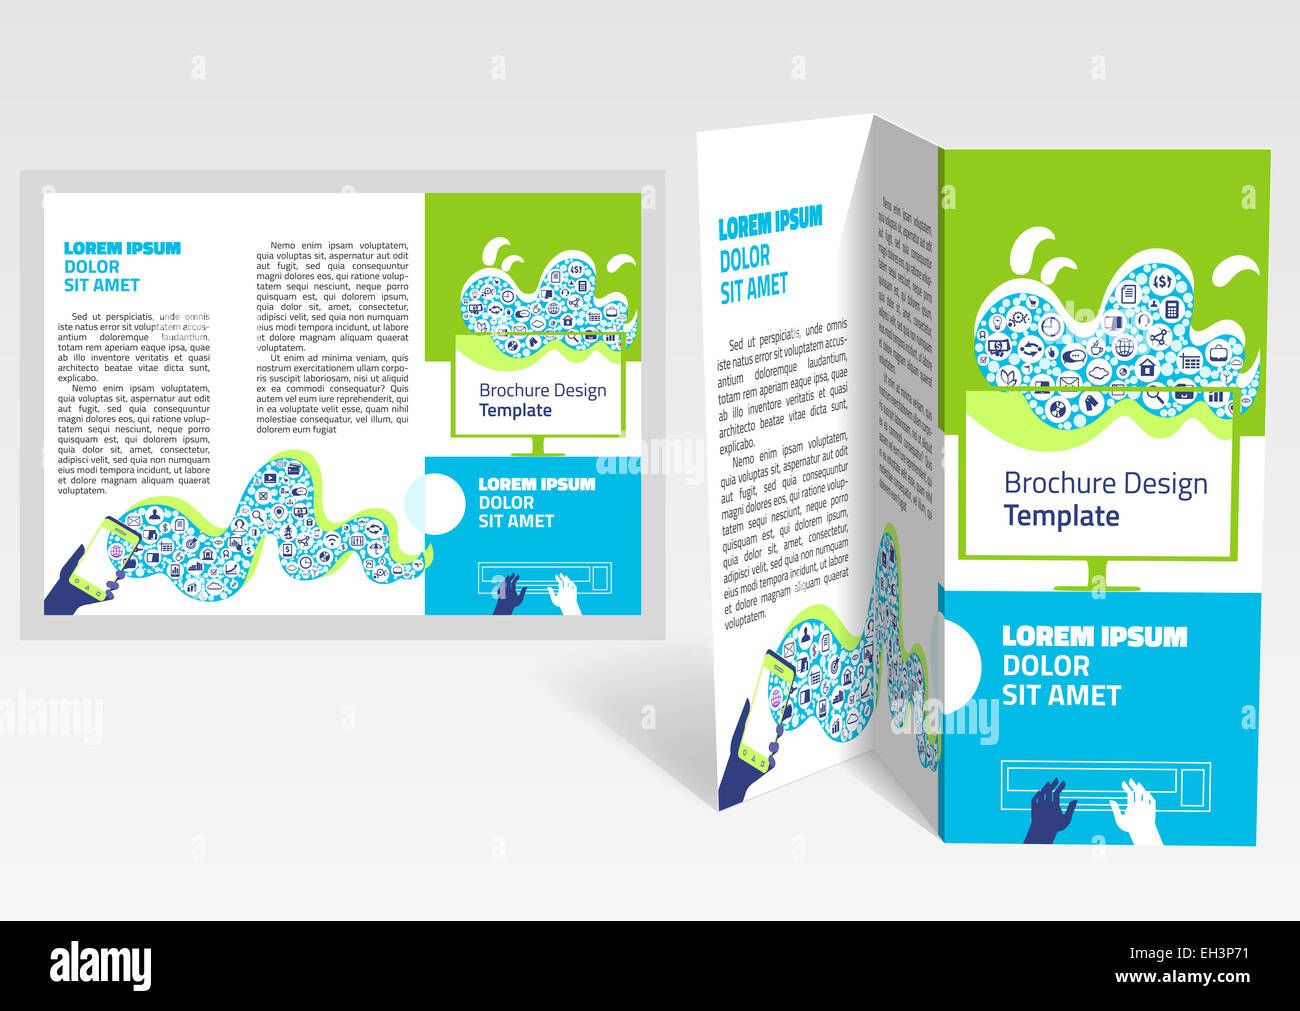 Brochure Booklet Zfold Layout Editable Design Template EPS - Z fold brochure template